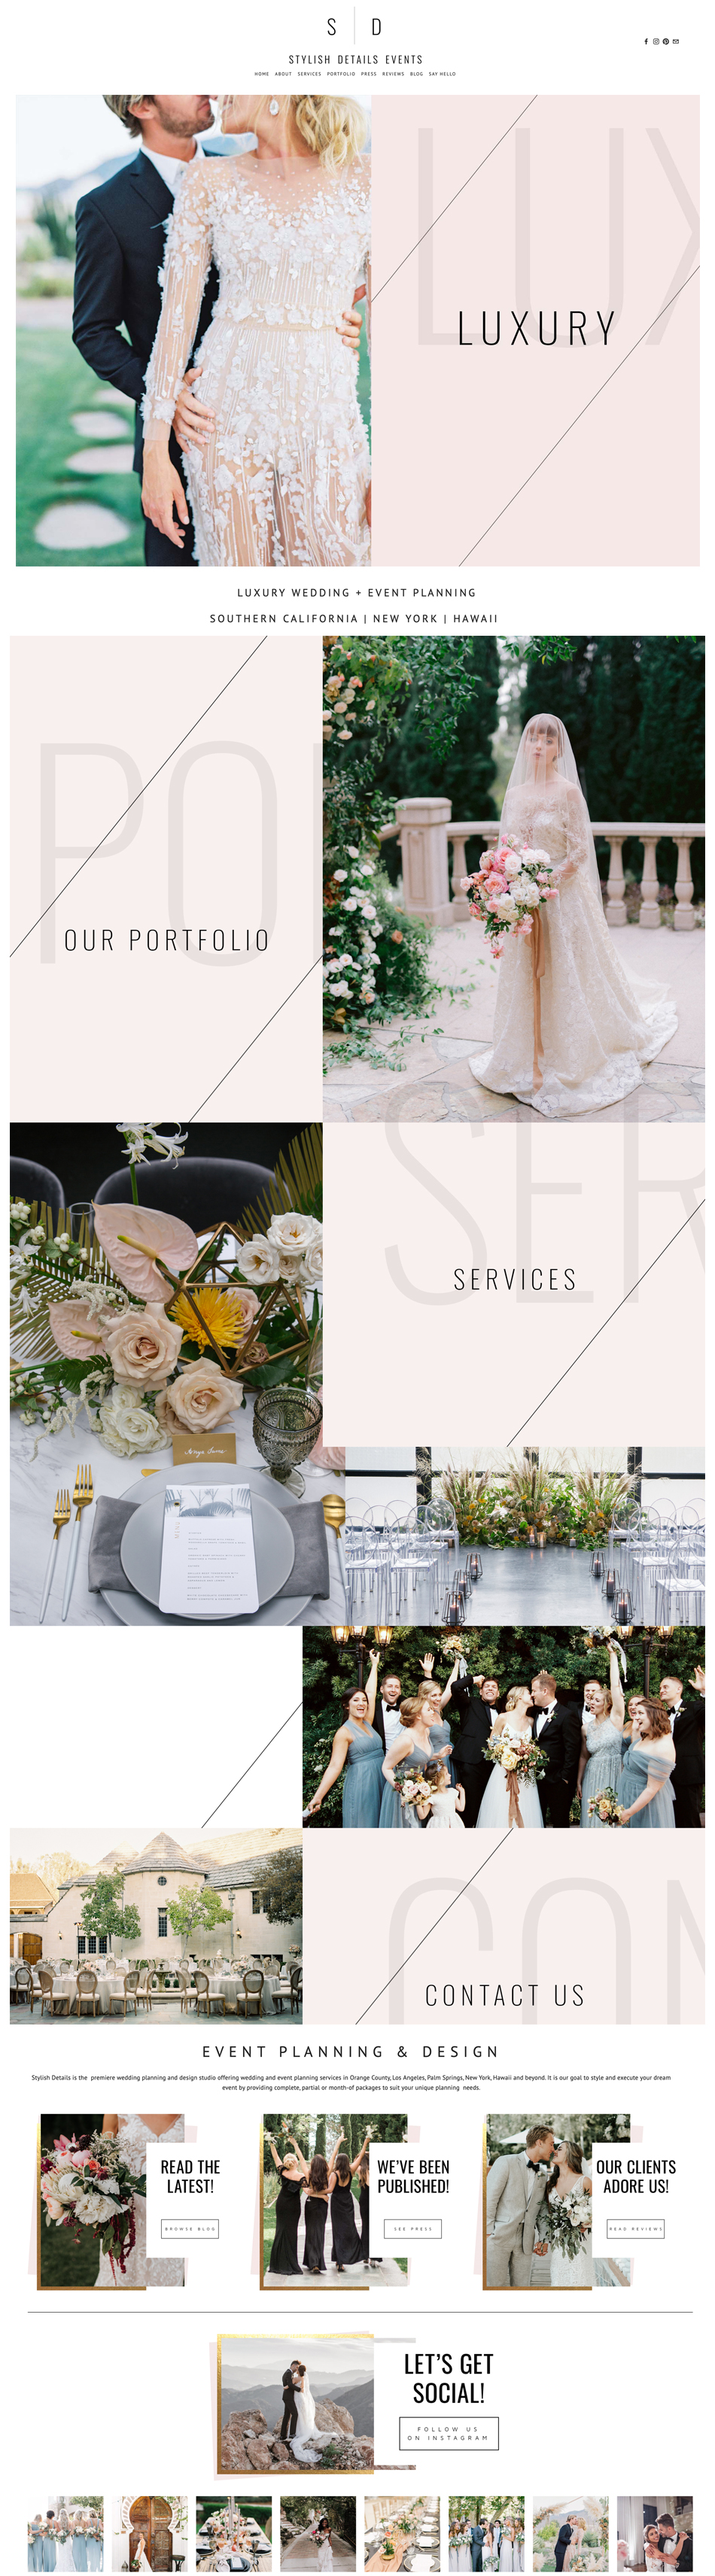 theeditorstouch.com | Luxury Squarespace Website Designer | The Editor's Touch | Wedding Planner Web Design | Stylish Details